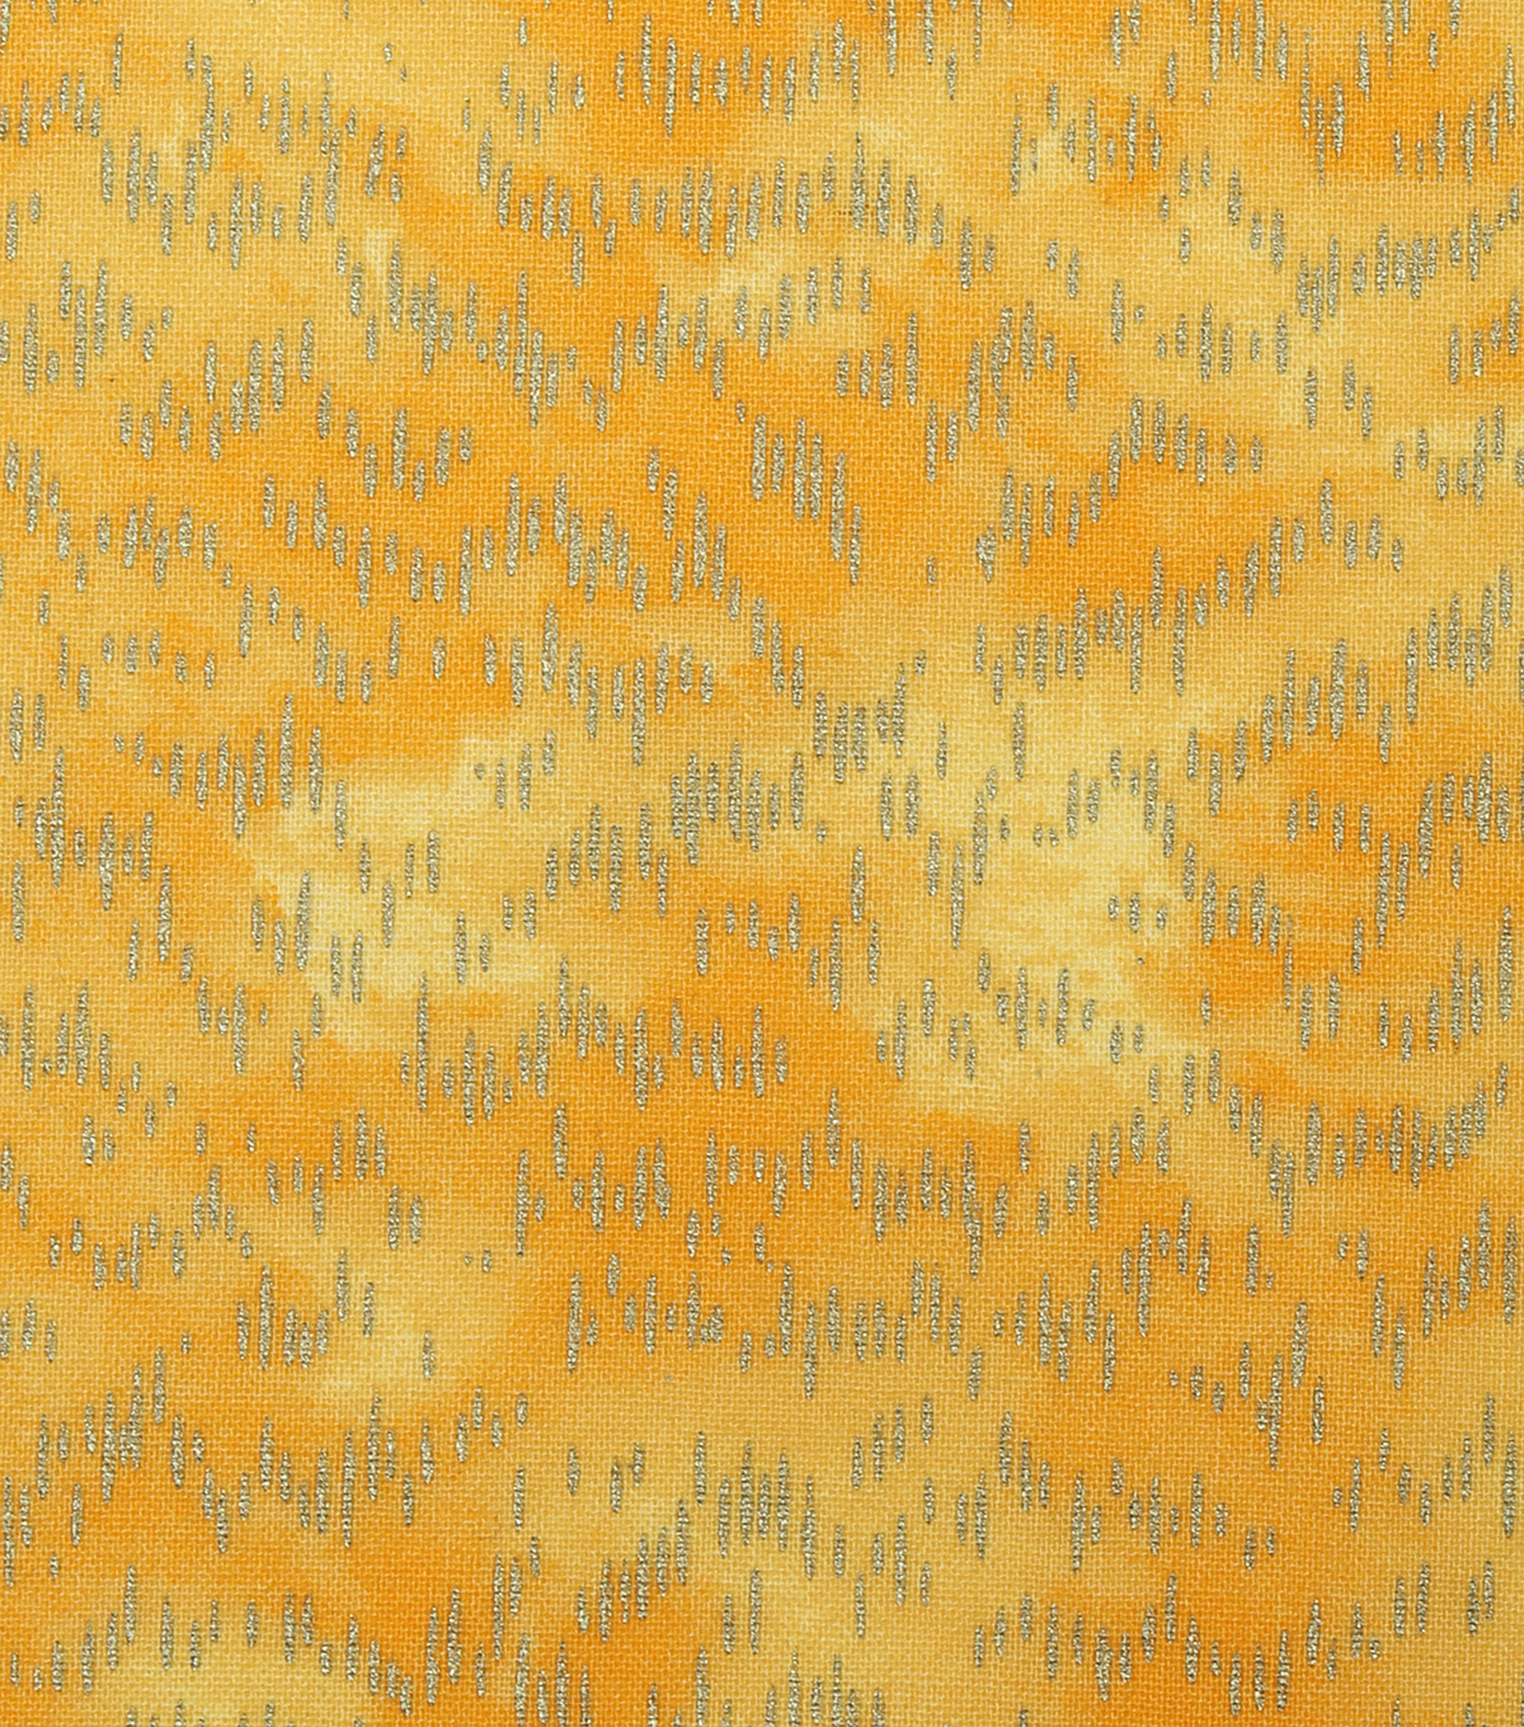 Keepsake Calico Cotton Fabric -Metallic Speckled on Yellow